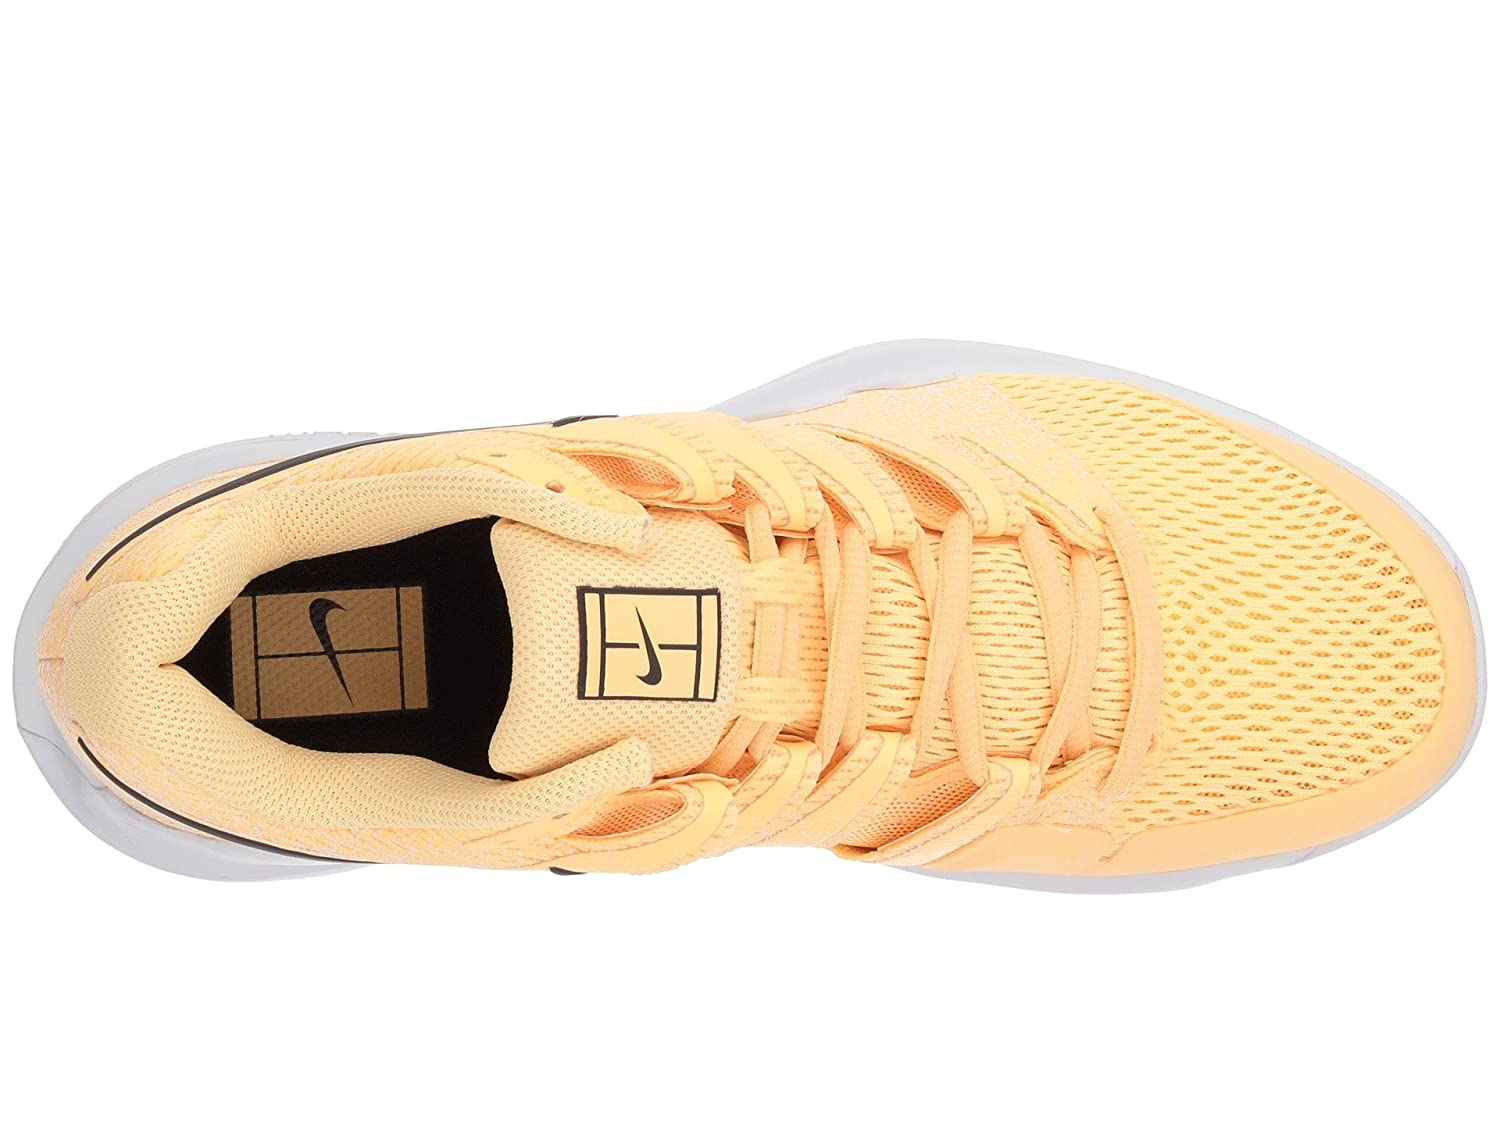 NIKE Women's Air Zoom Shoes Vapor X HC Tennis Shoes Zoom B0761Y9P9L 10.5 B(M) US|Tangerine Tint/Anthracite-white 59c51a